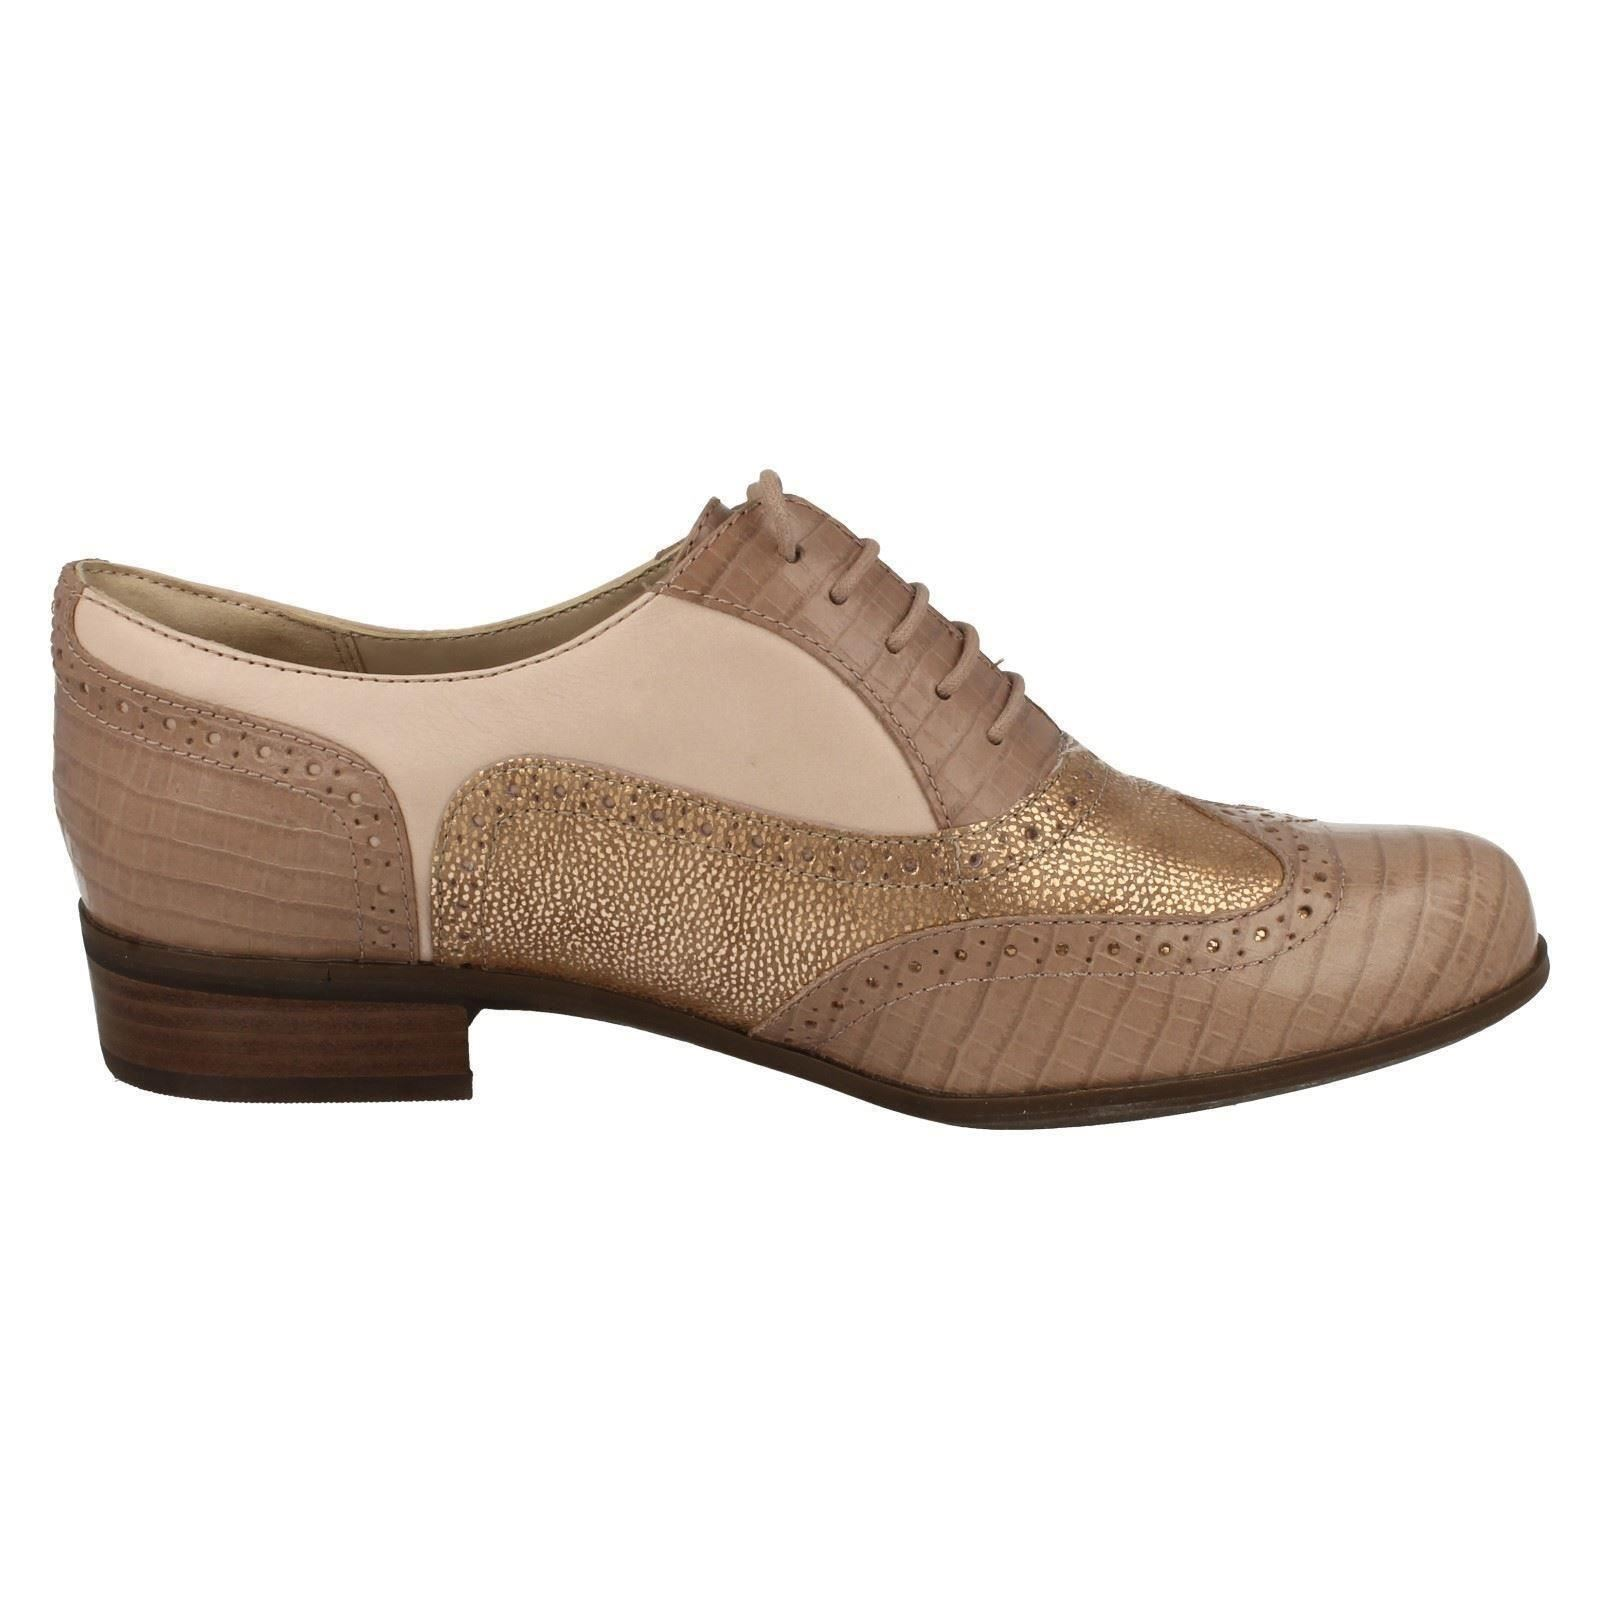 Discover Dune London's range of Ladies Brogues. A classic wardrobe staple updated in the latest colours and materials for the new season. Add the twist with a cheeky tassel or monk strap detail. Or go for a more casual look, with a brogue detail trainer. Ladies Sale Boots Shoes Sandals Accessories Bags.